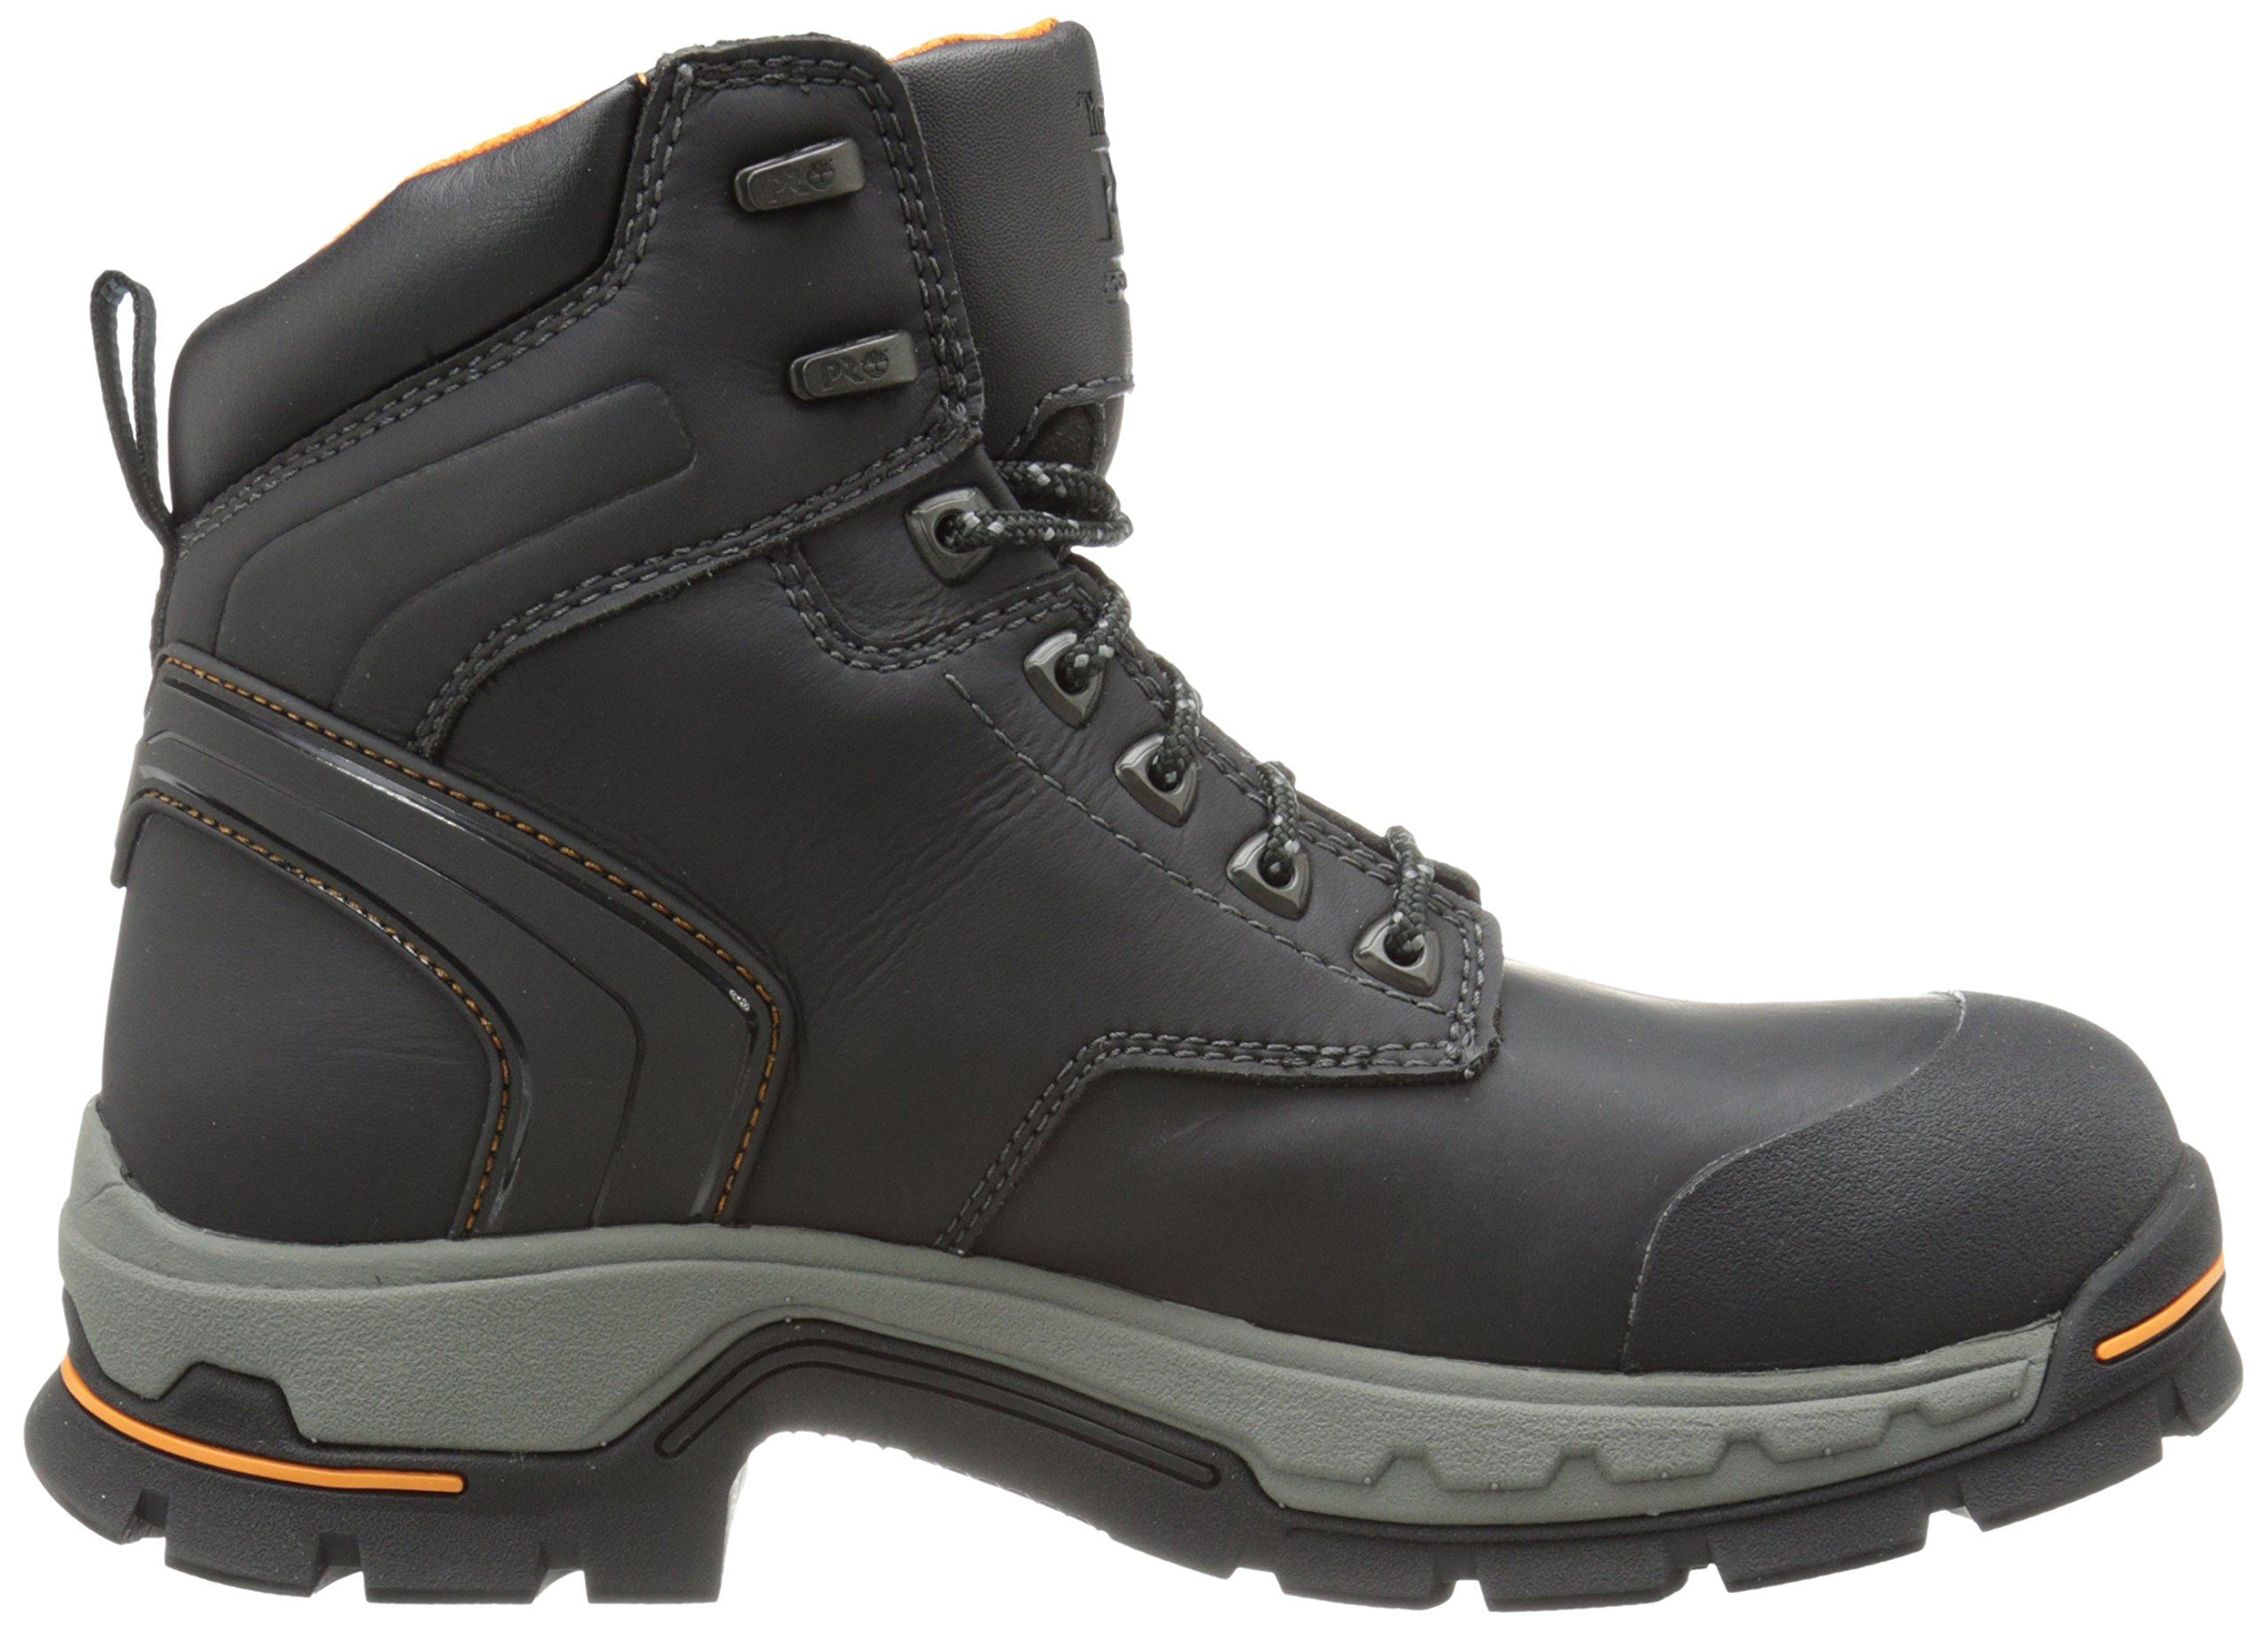 Timberland PRO Men's 6 Inch Stockdale Grip Max Alloy Toe Work and Hunt Boot, Black Microfiber, 5.5 W US by Timberland PRO (Image #7)